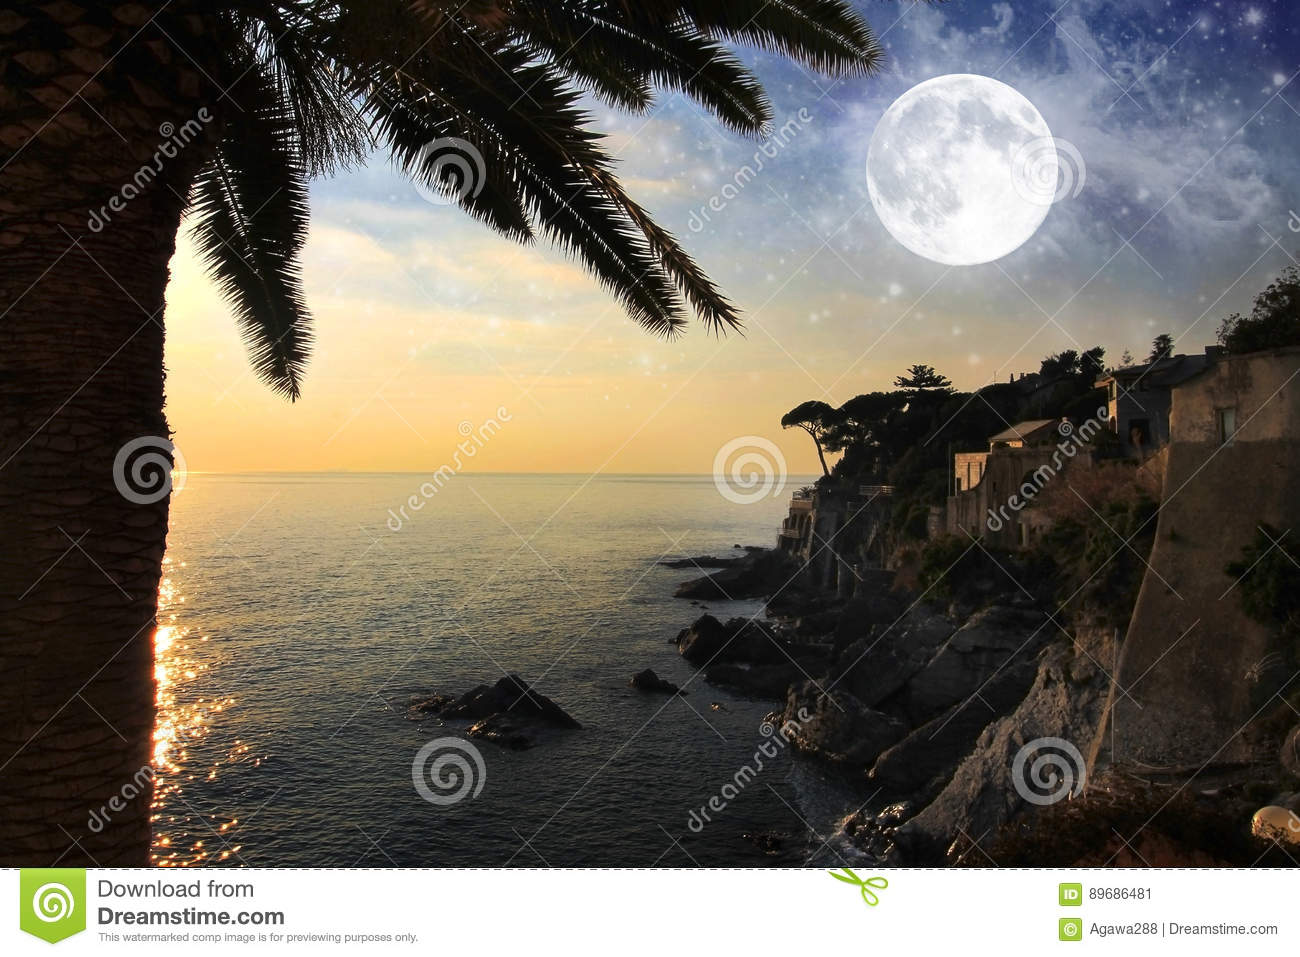 Seascape with palm, moon and stars on the sky.